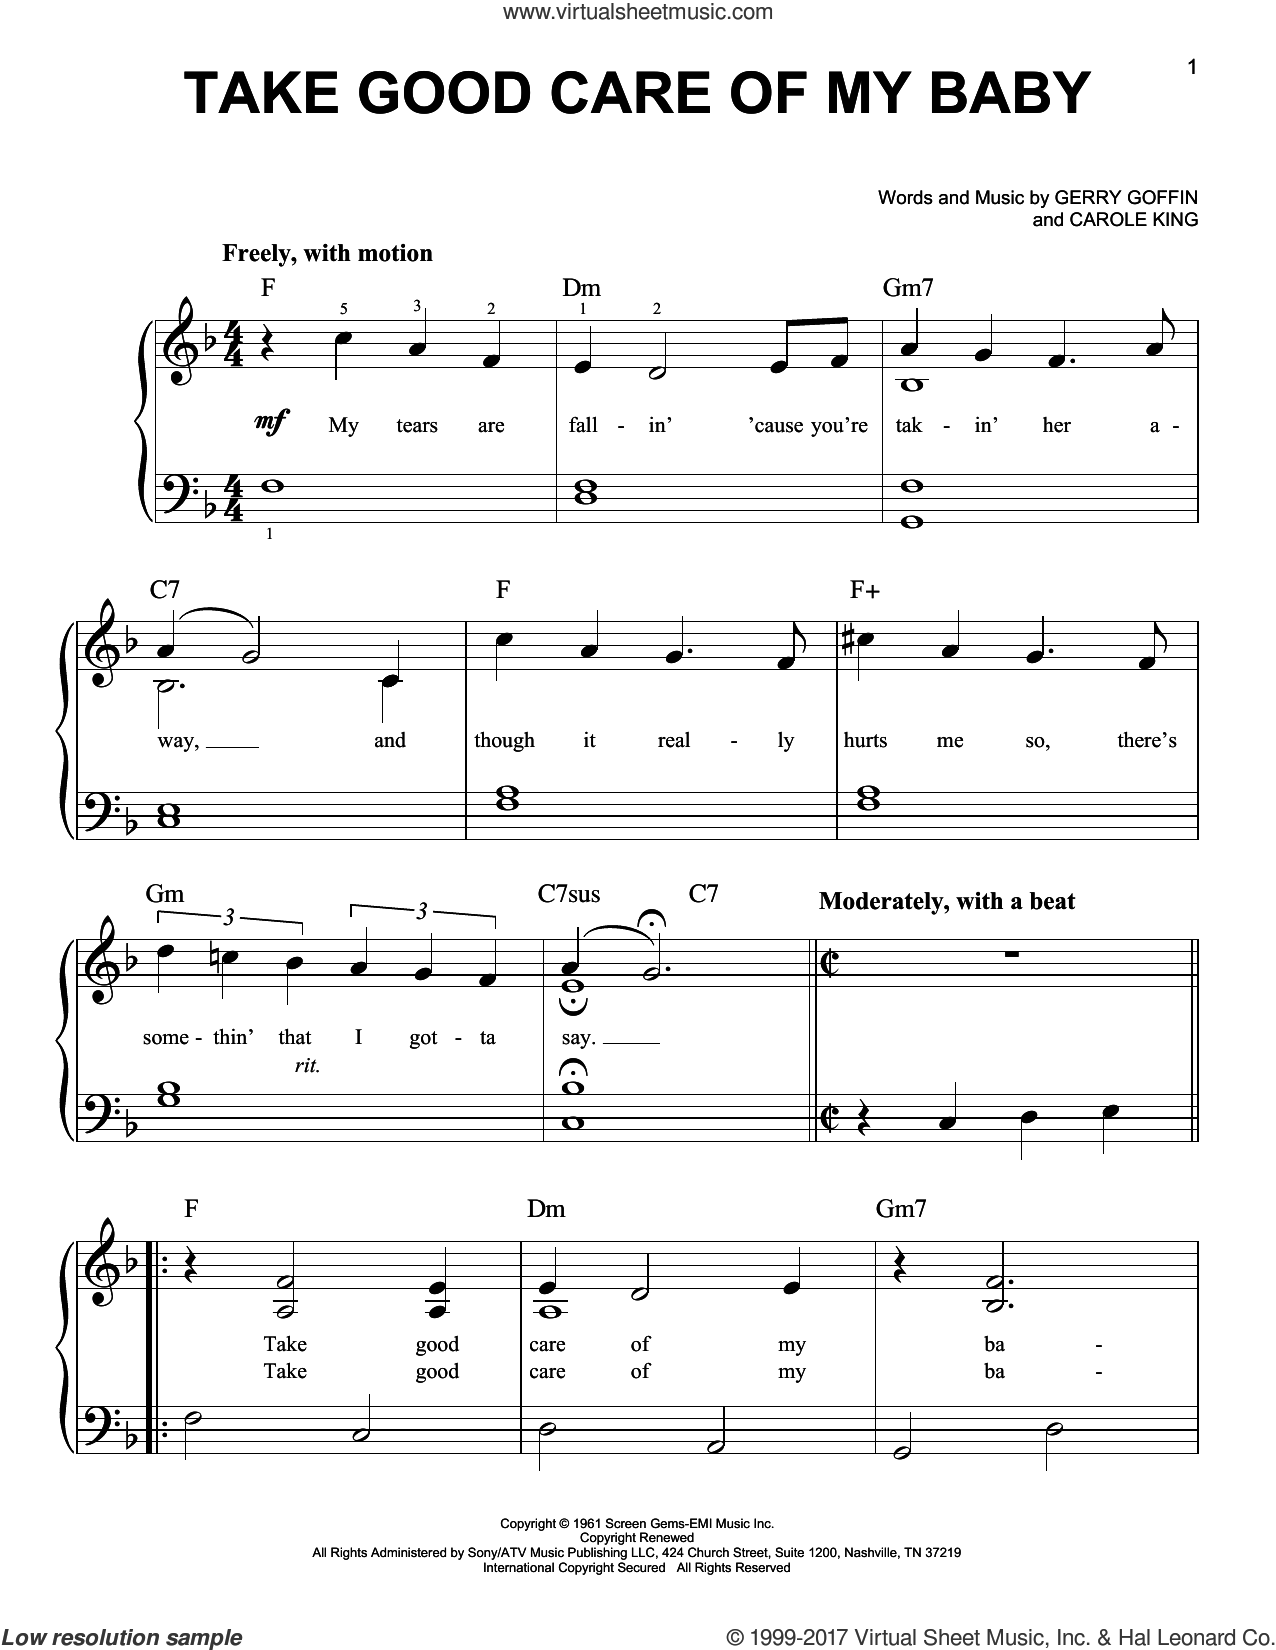 Take Good Care Of My Baby sheet music for piano solo by Carole King, Bobby Vee, Bobby Vinton and Gerry Goffin, easy. Score Image Preview.